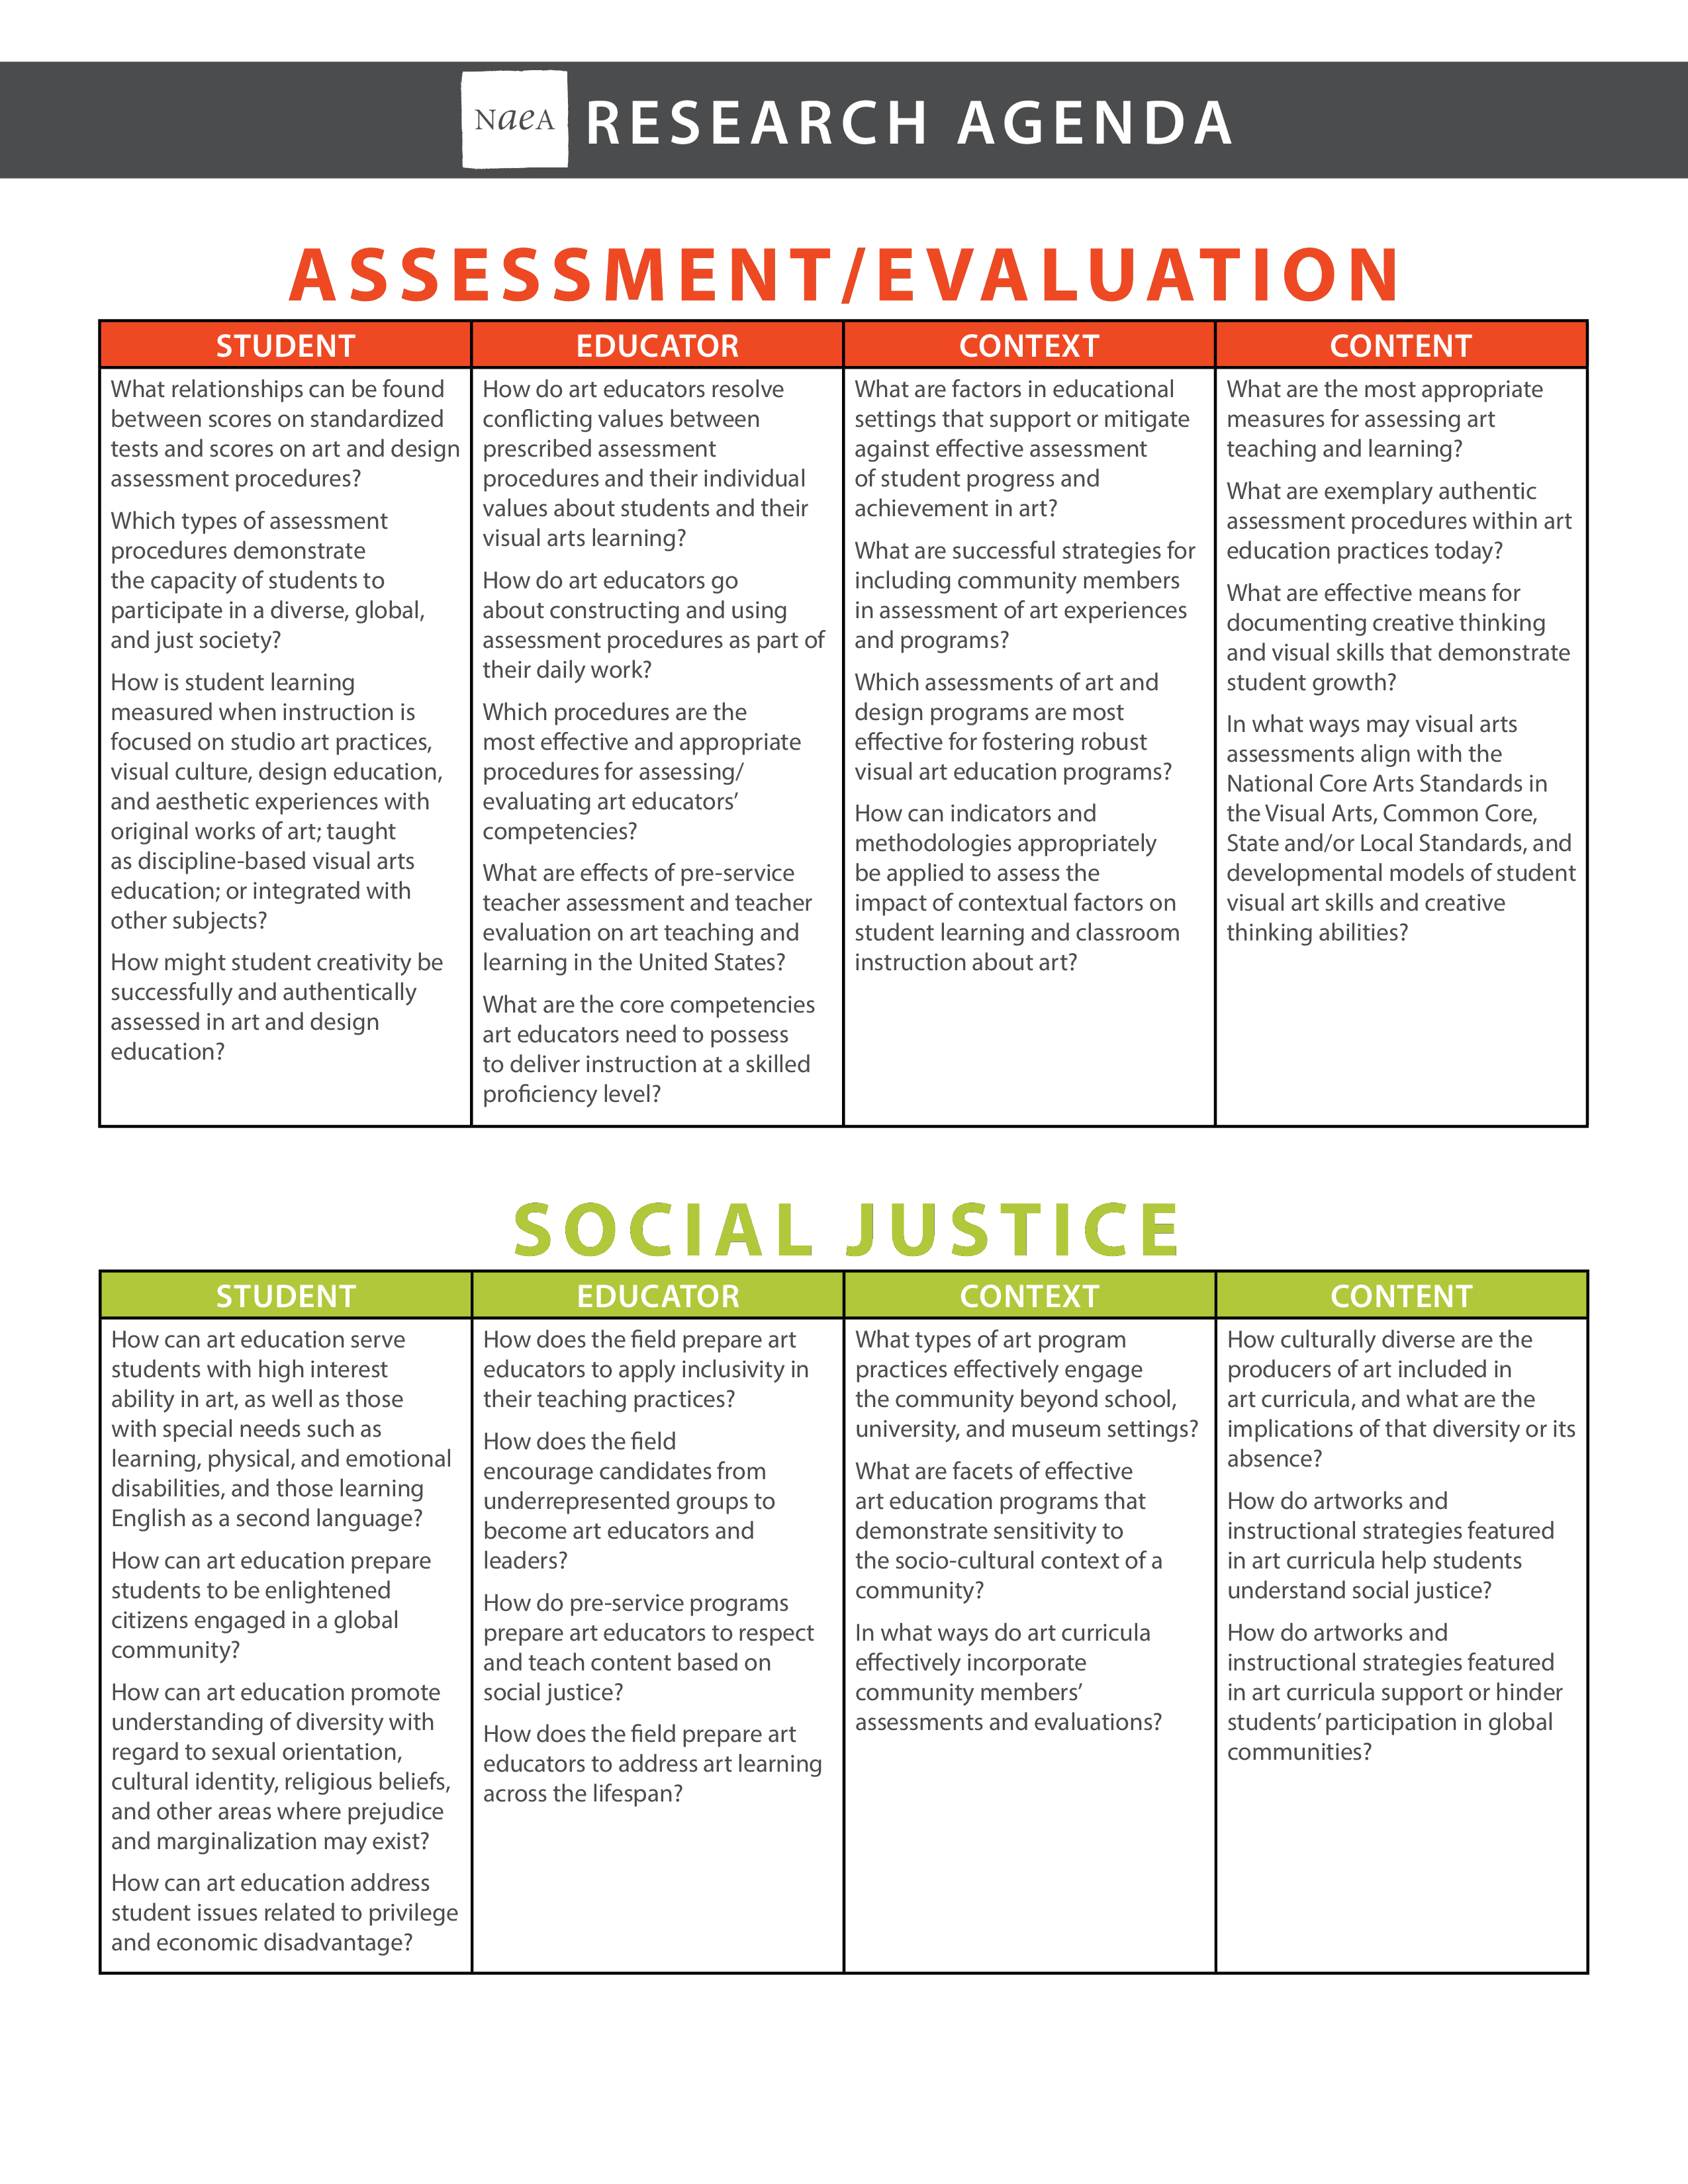 Research Agenda Assessment and Evaluation main image